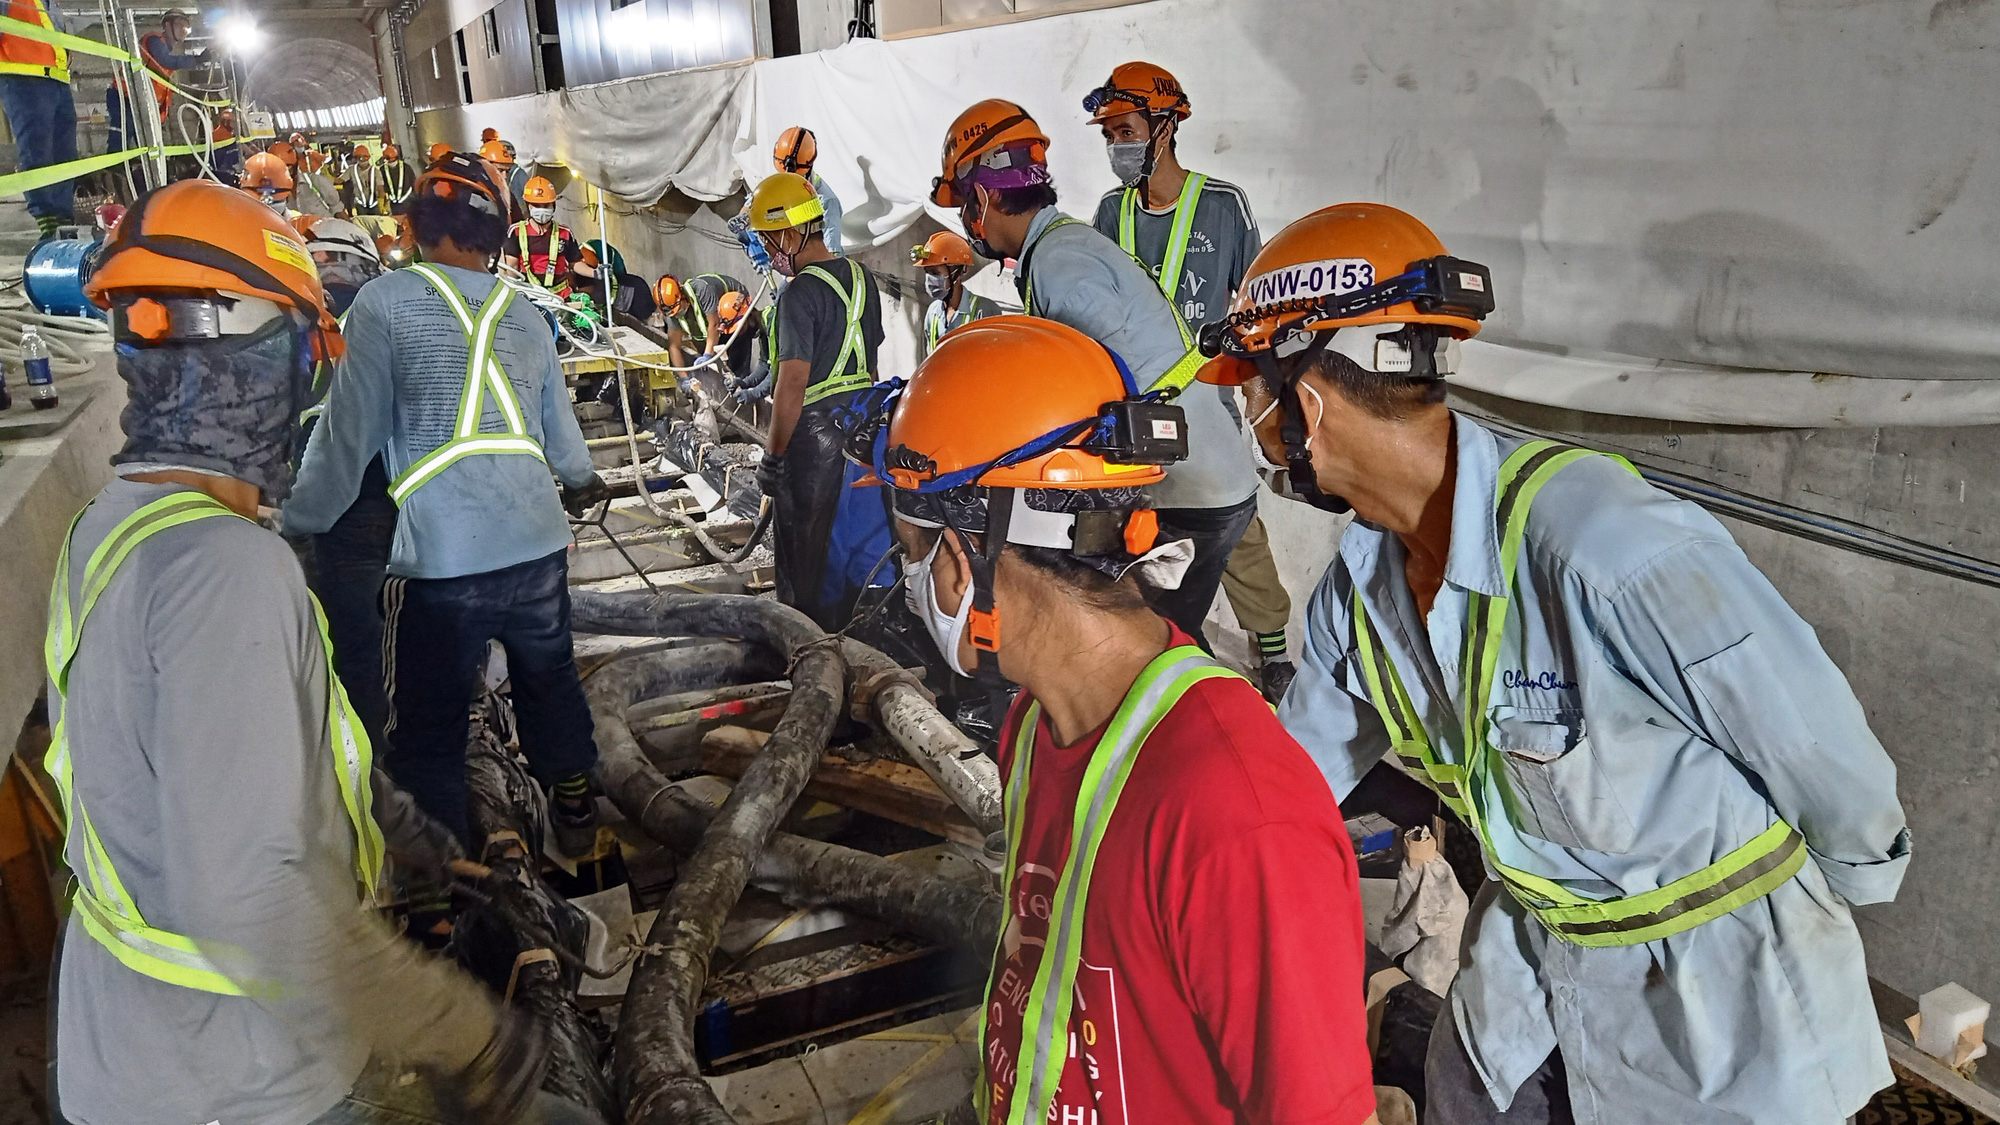 Engineers and workers build concrete along the railway at Municipal Theater Terminal of Ho Chi Minh City's metro route No.1, September 16, 2020. Photo: Van Binh / Tuoi Tre